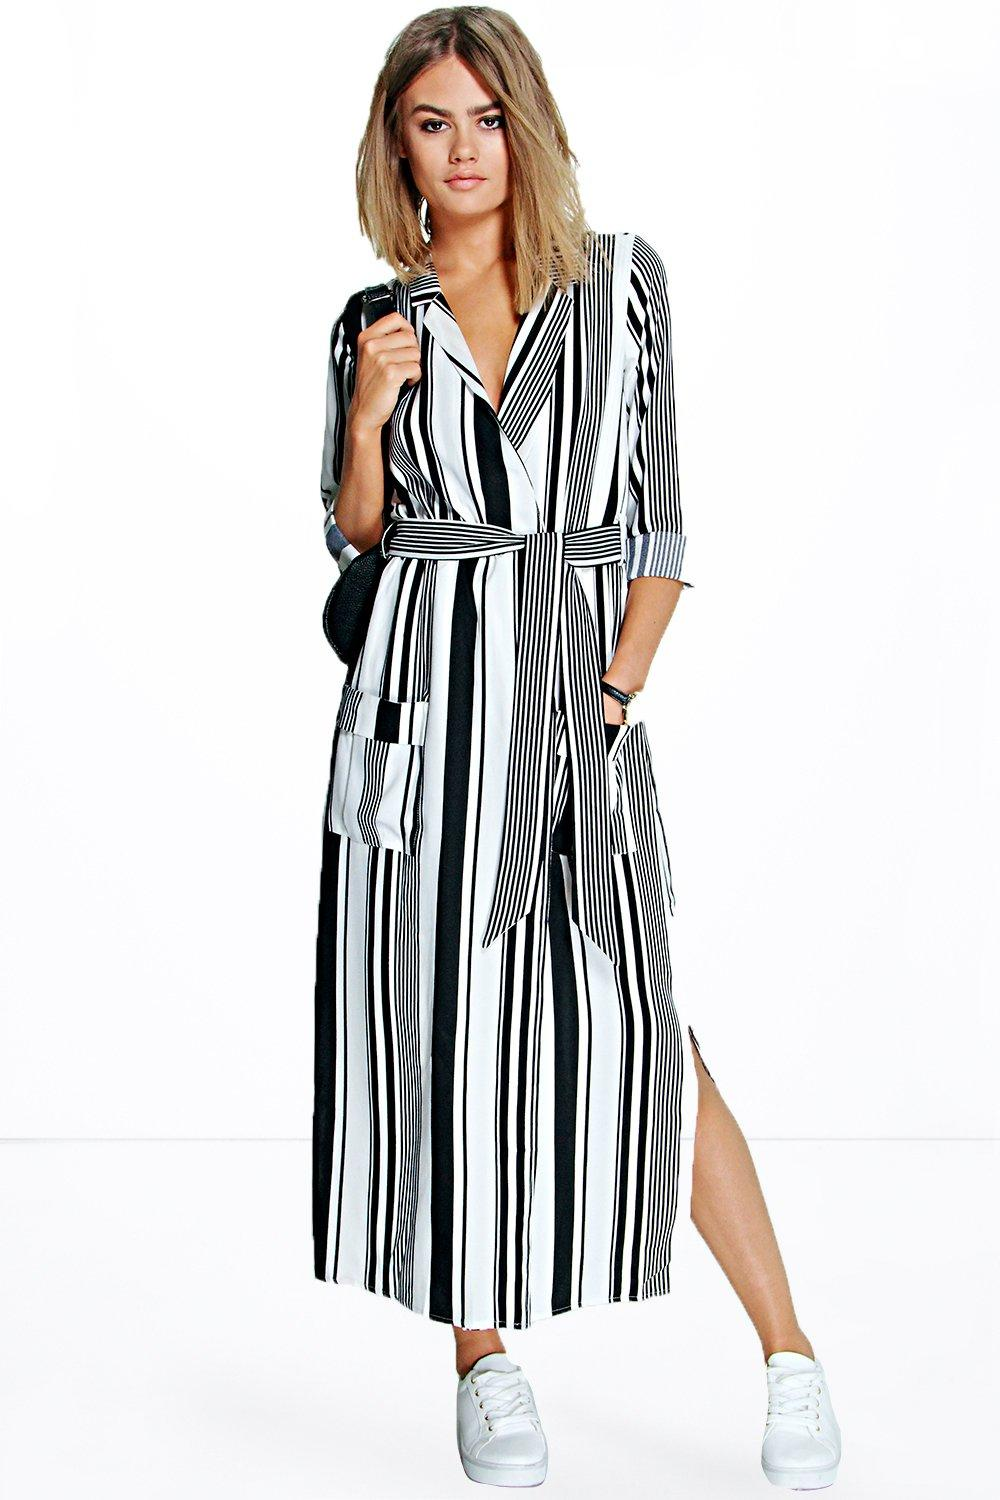 871cc2639df Womens Multi Striped Maxi Shirt Dress. Hover to zoom